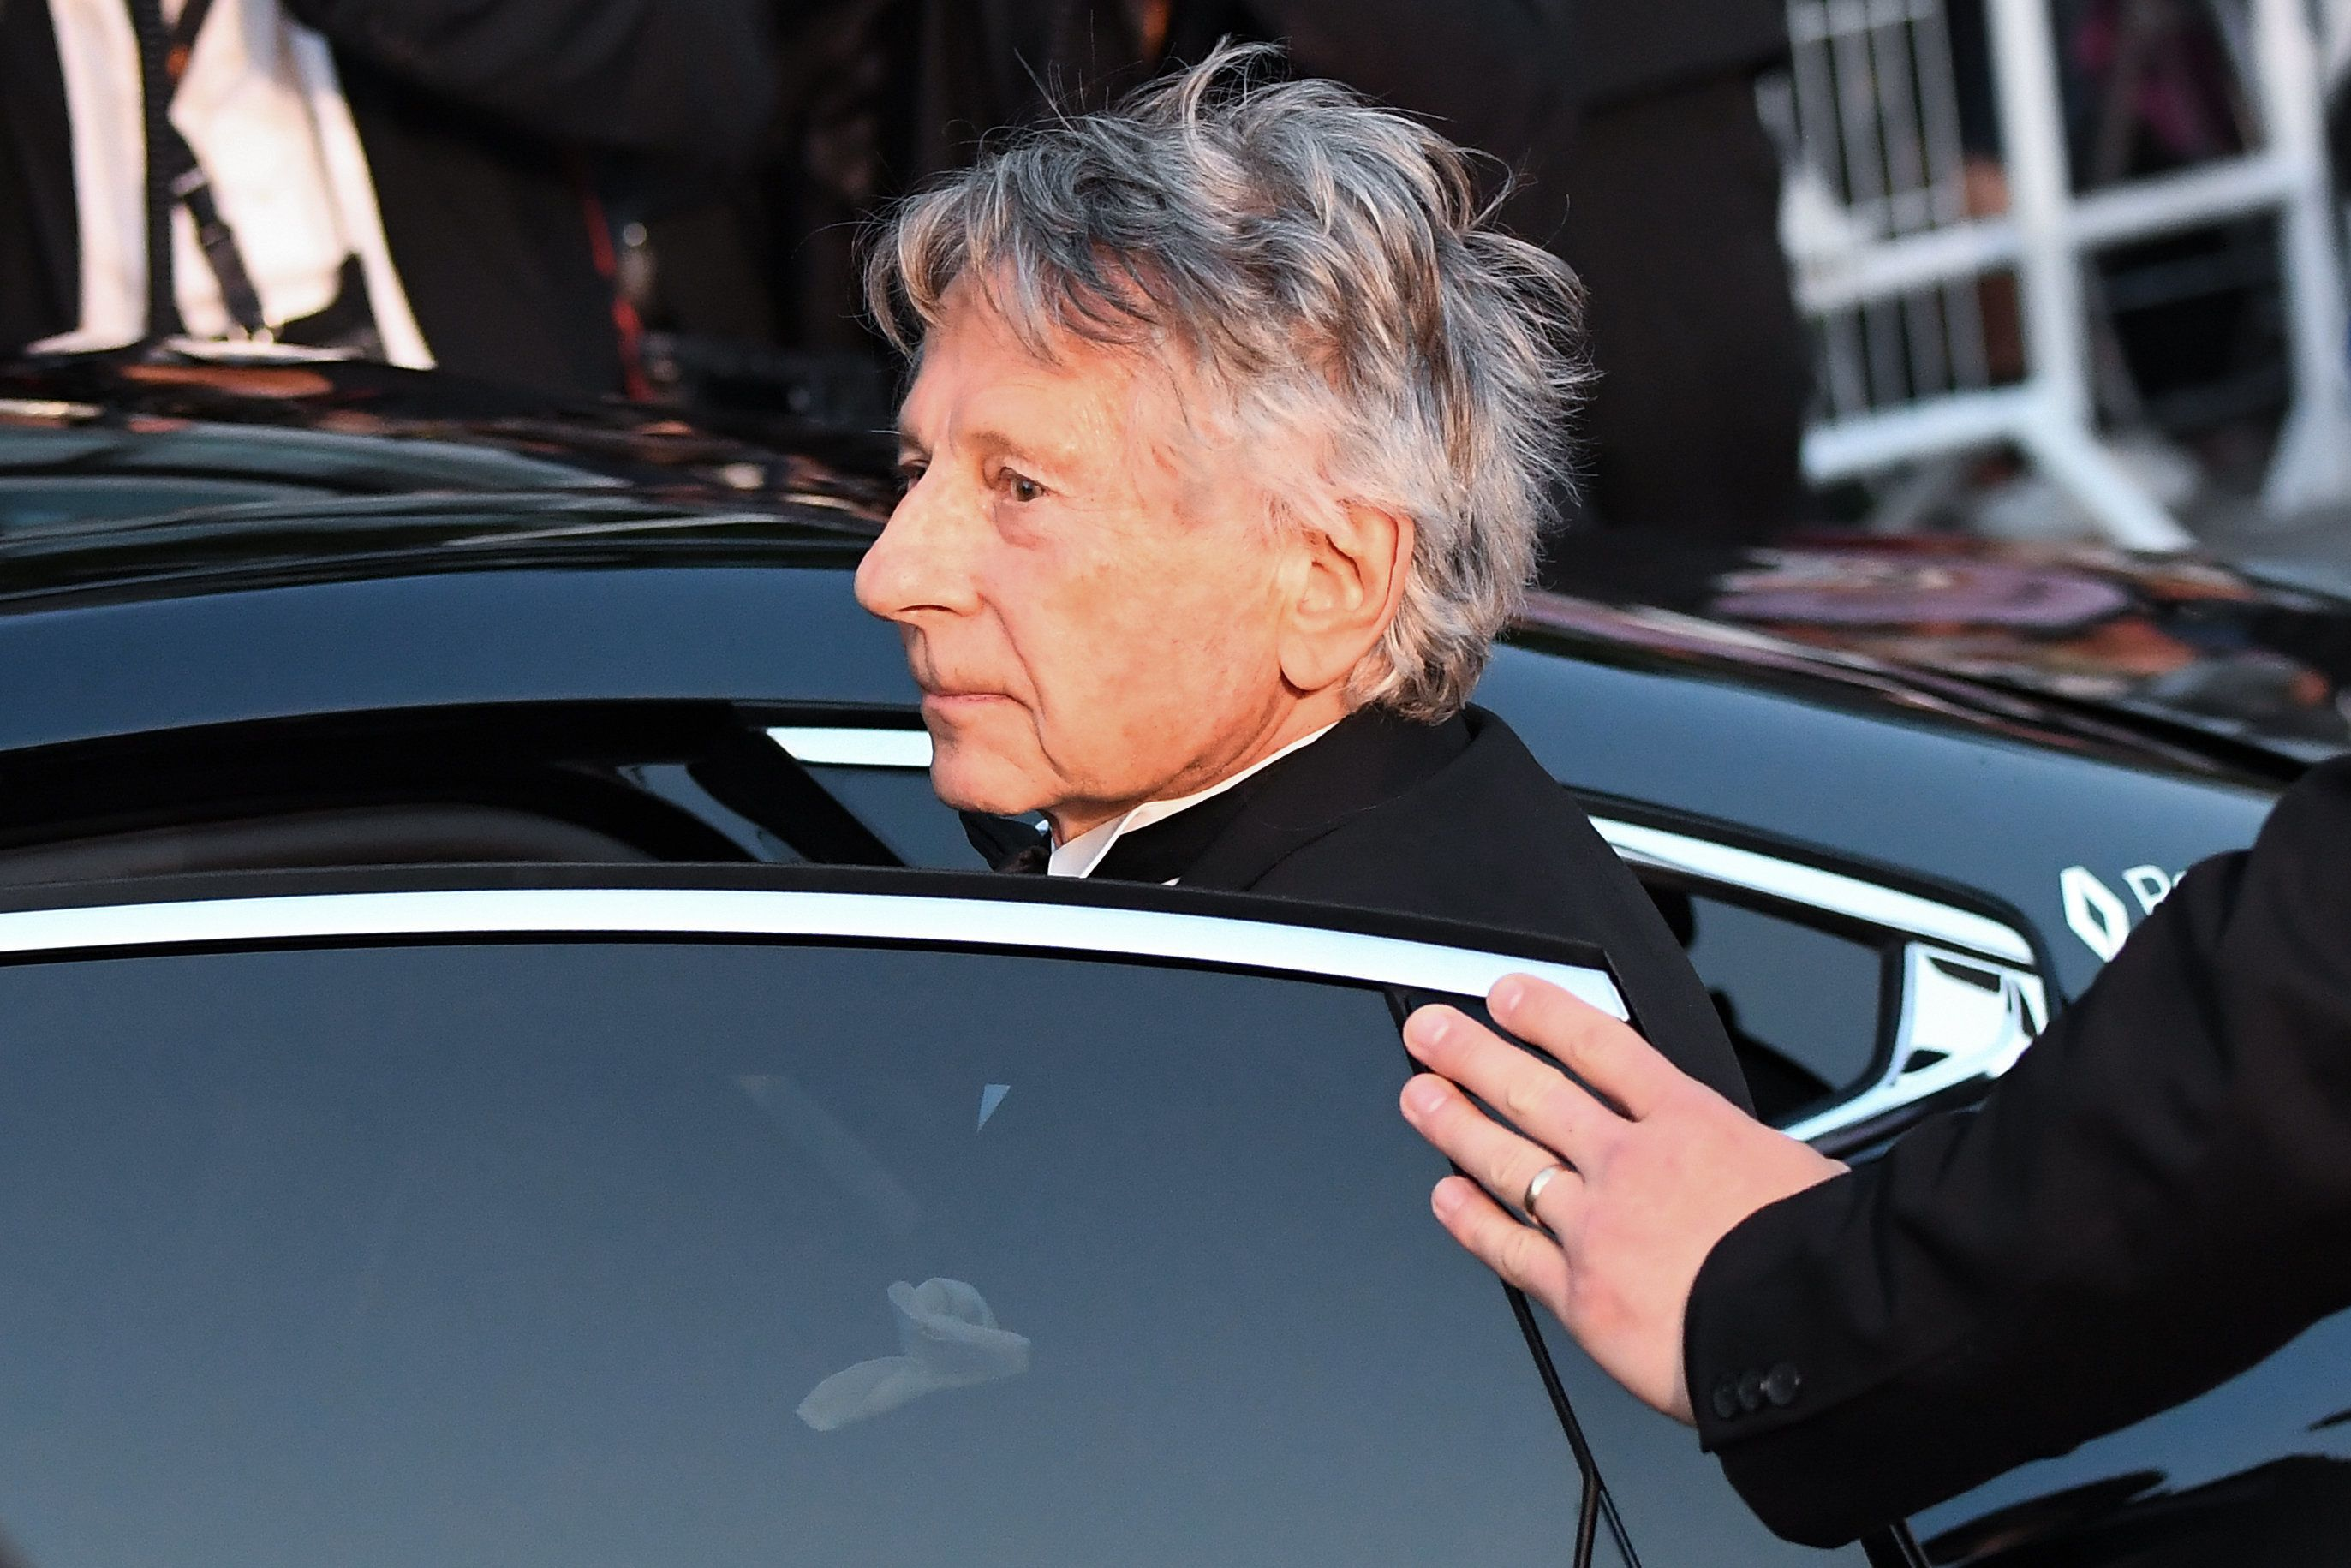 (FromL) French-Polish director Roman Polanski gets into a car as he leaves the Festival Palace on May 27, 2017 following the screening of the film 'Based on a True Story' (D'Apres une Histoire Vraie) at the 70th edition of the Cannes Film Festival in Cannes, southern France.  / AFP PHOTO / Anne-Christine POUJOULAT        (Photo credit should read ANNE-CHRISTINE POUJOULAT/AFP/Getty Images)